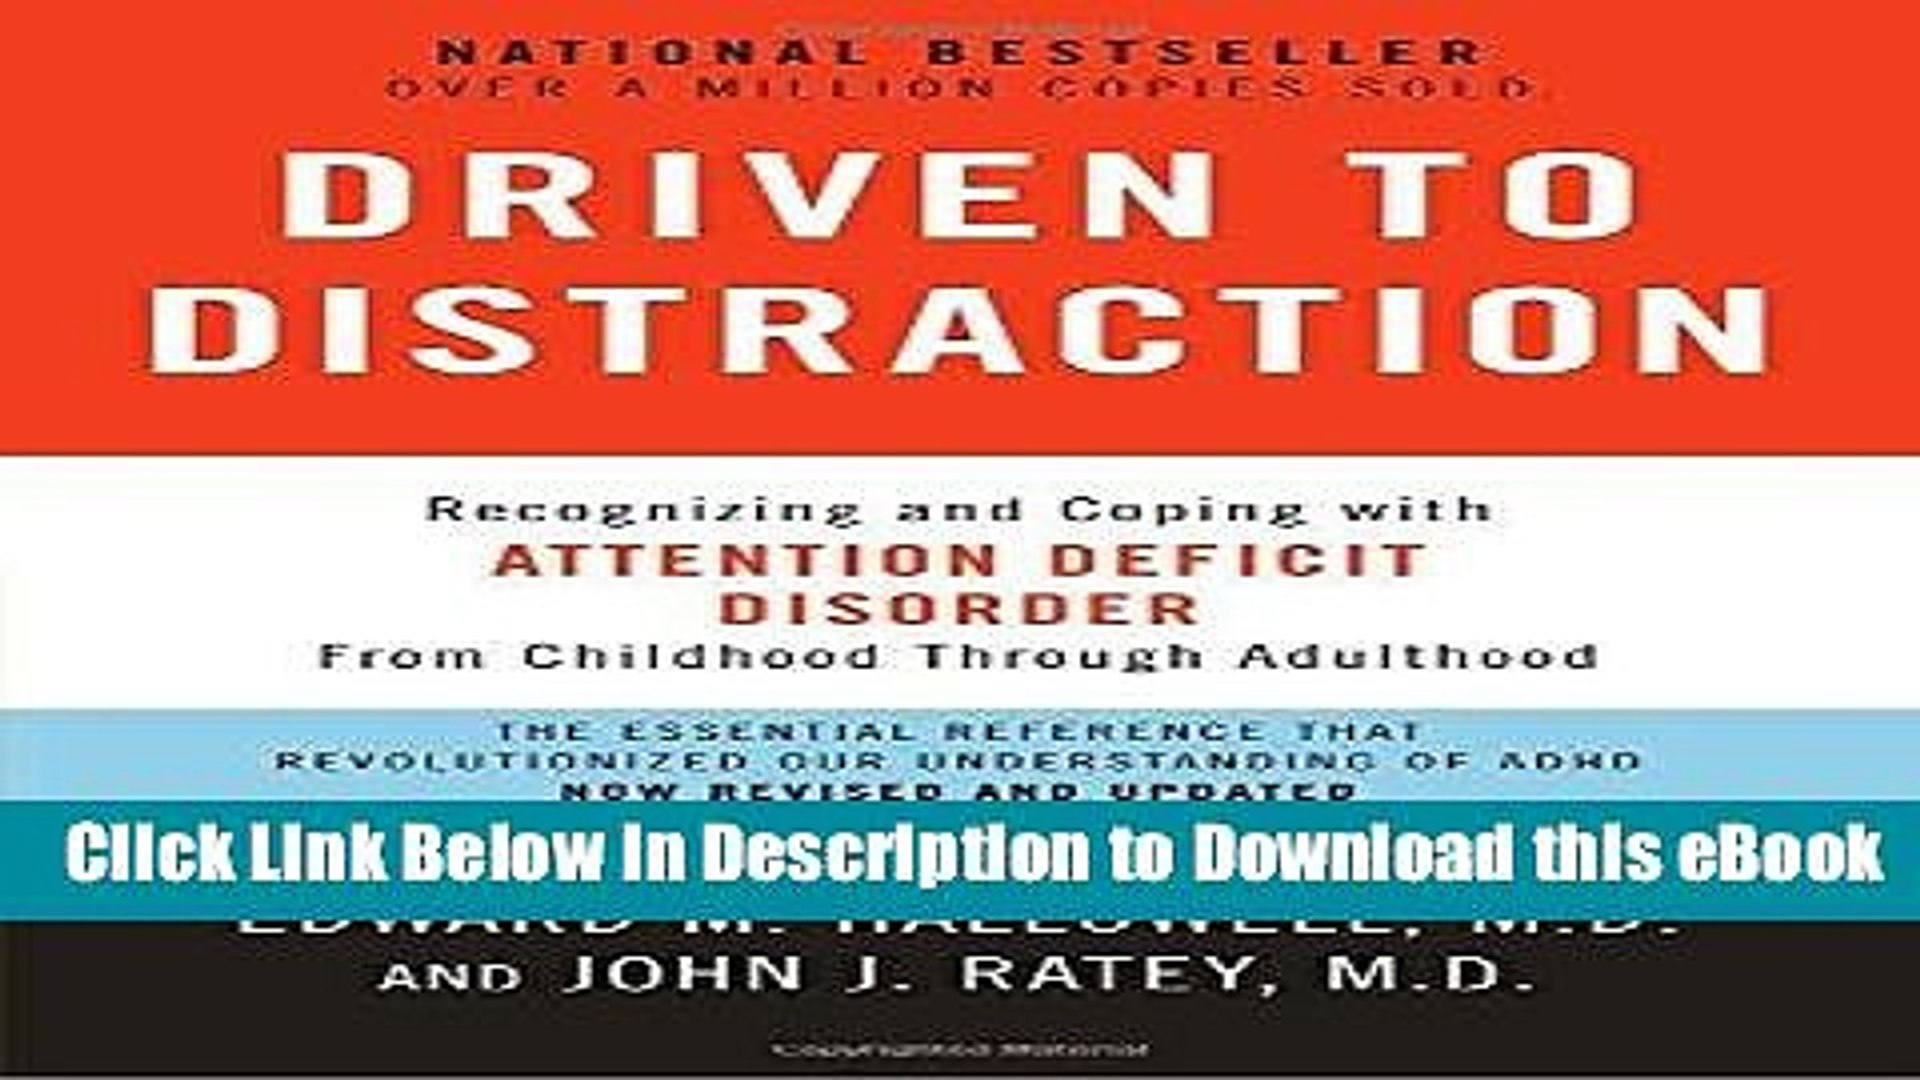 dabe068d75e1b EPUB Download Driven to Distraction (Revised): Recognizing and Coping with  Attention Deficit